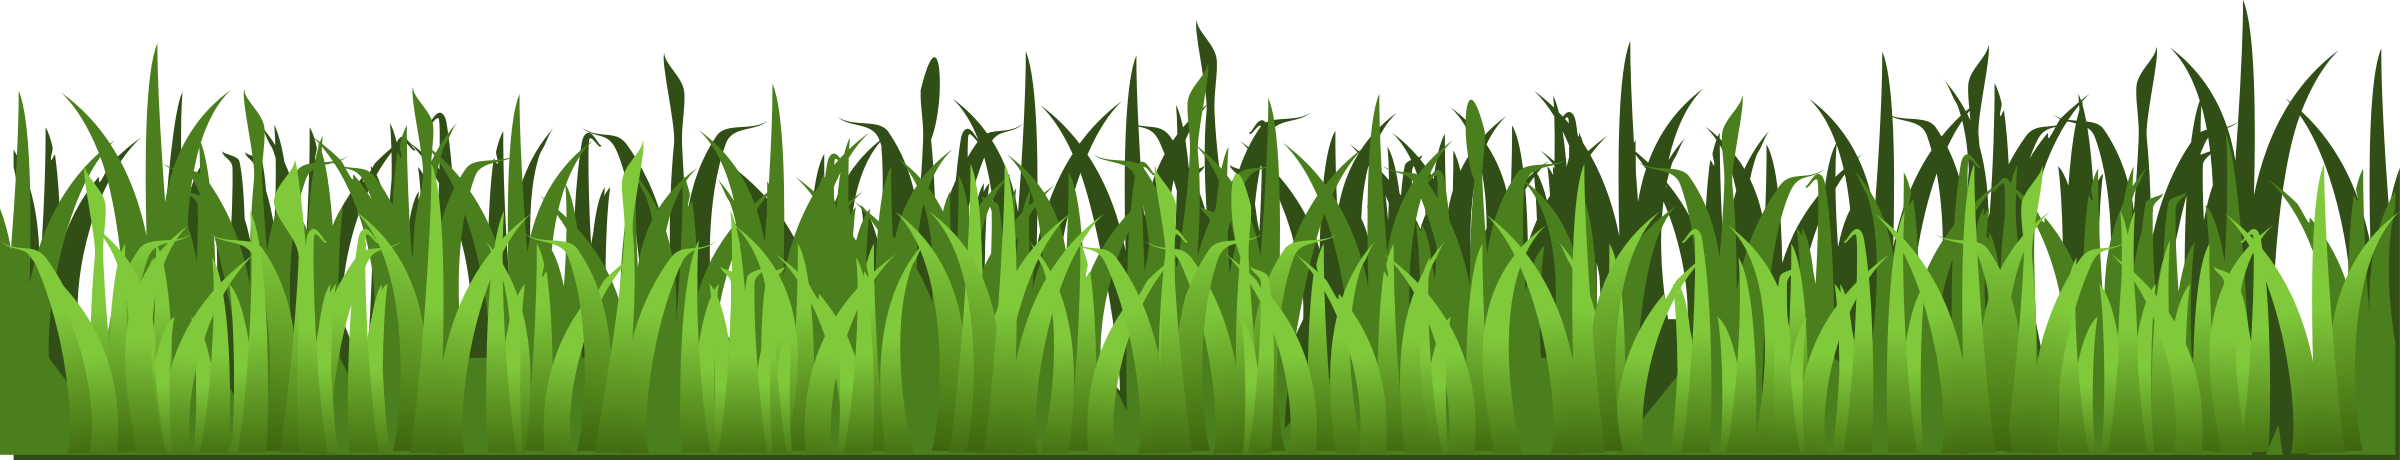 Only big image png. Clipart grass pdf